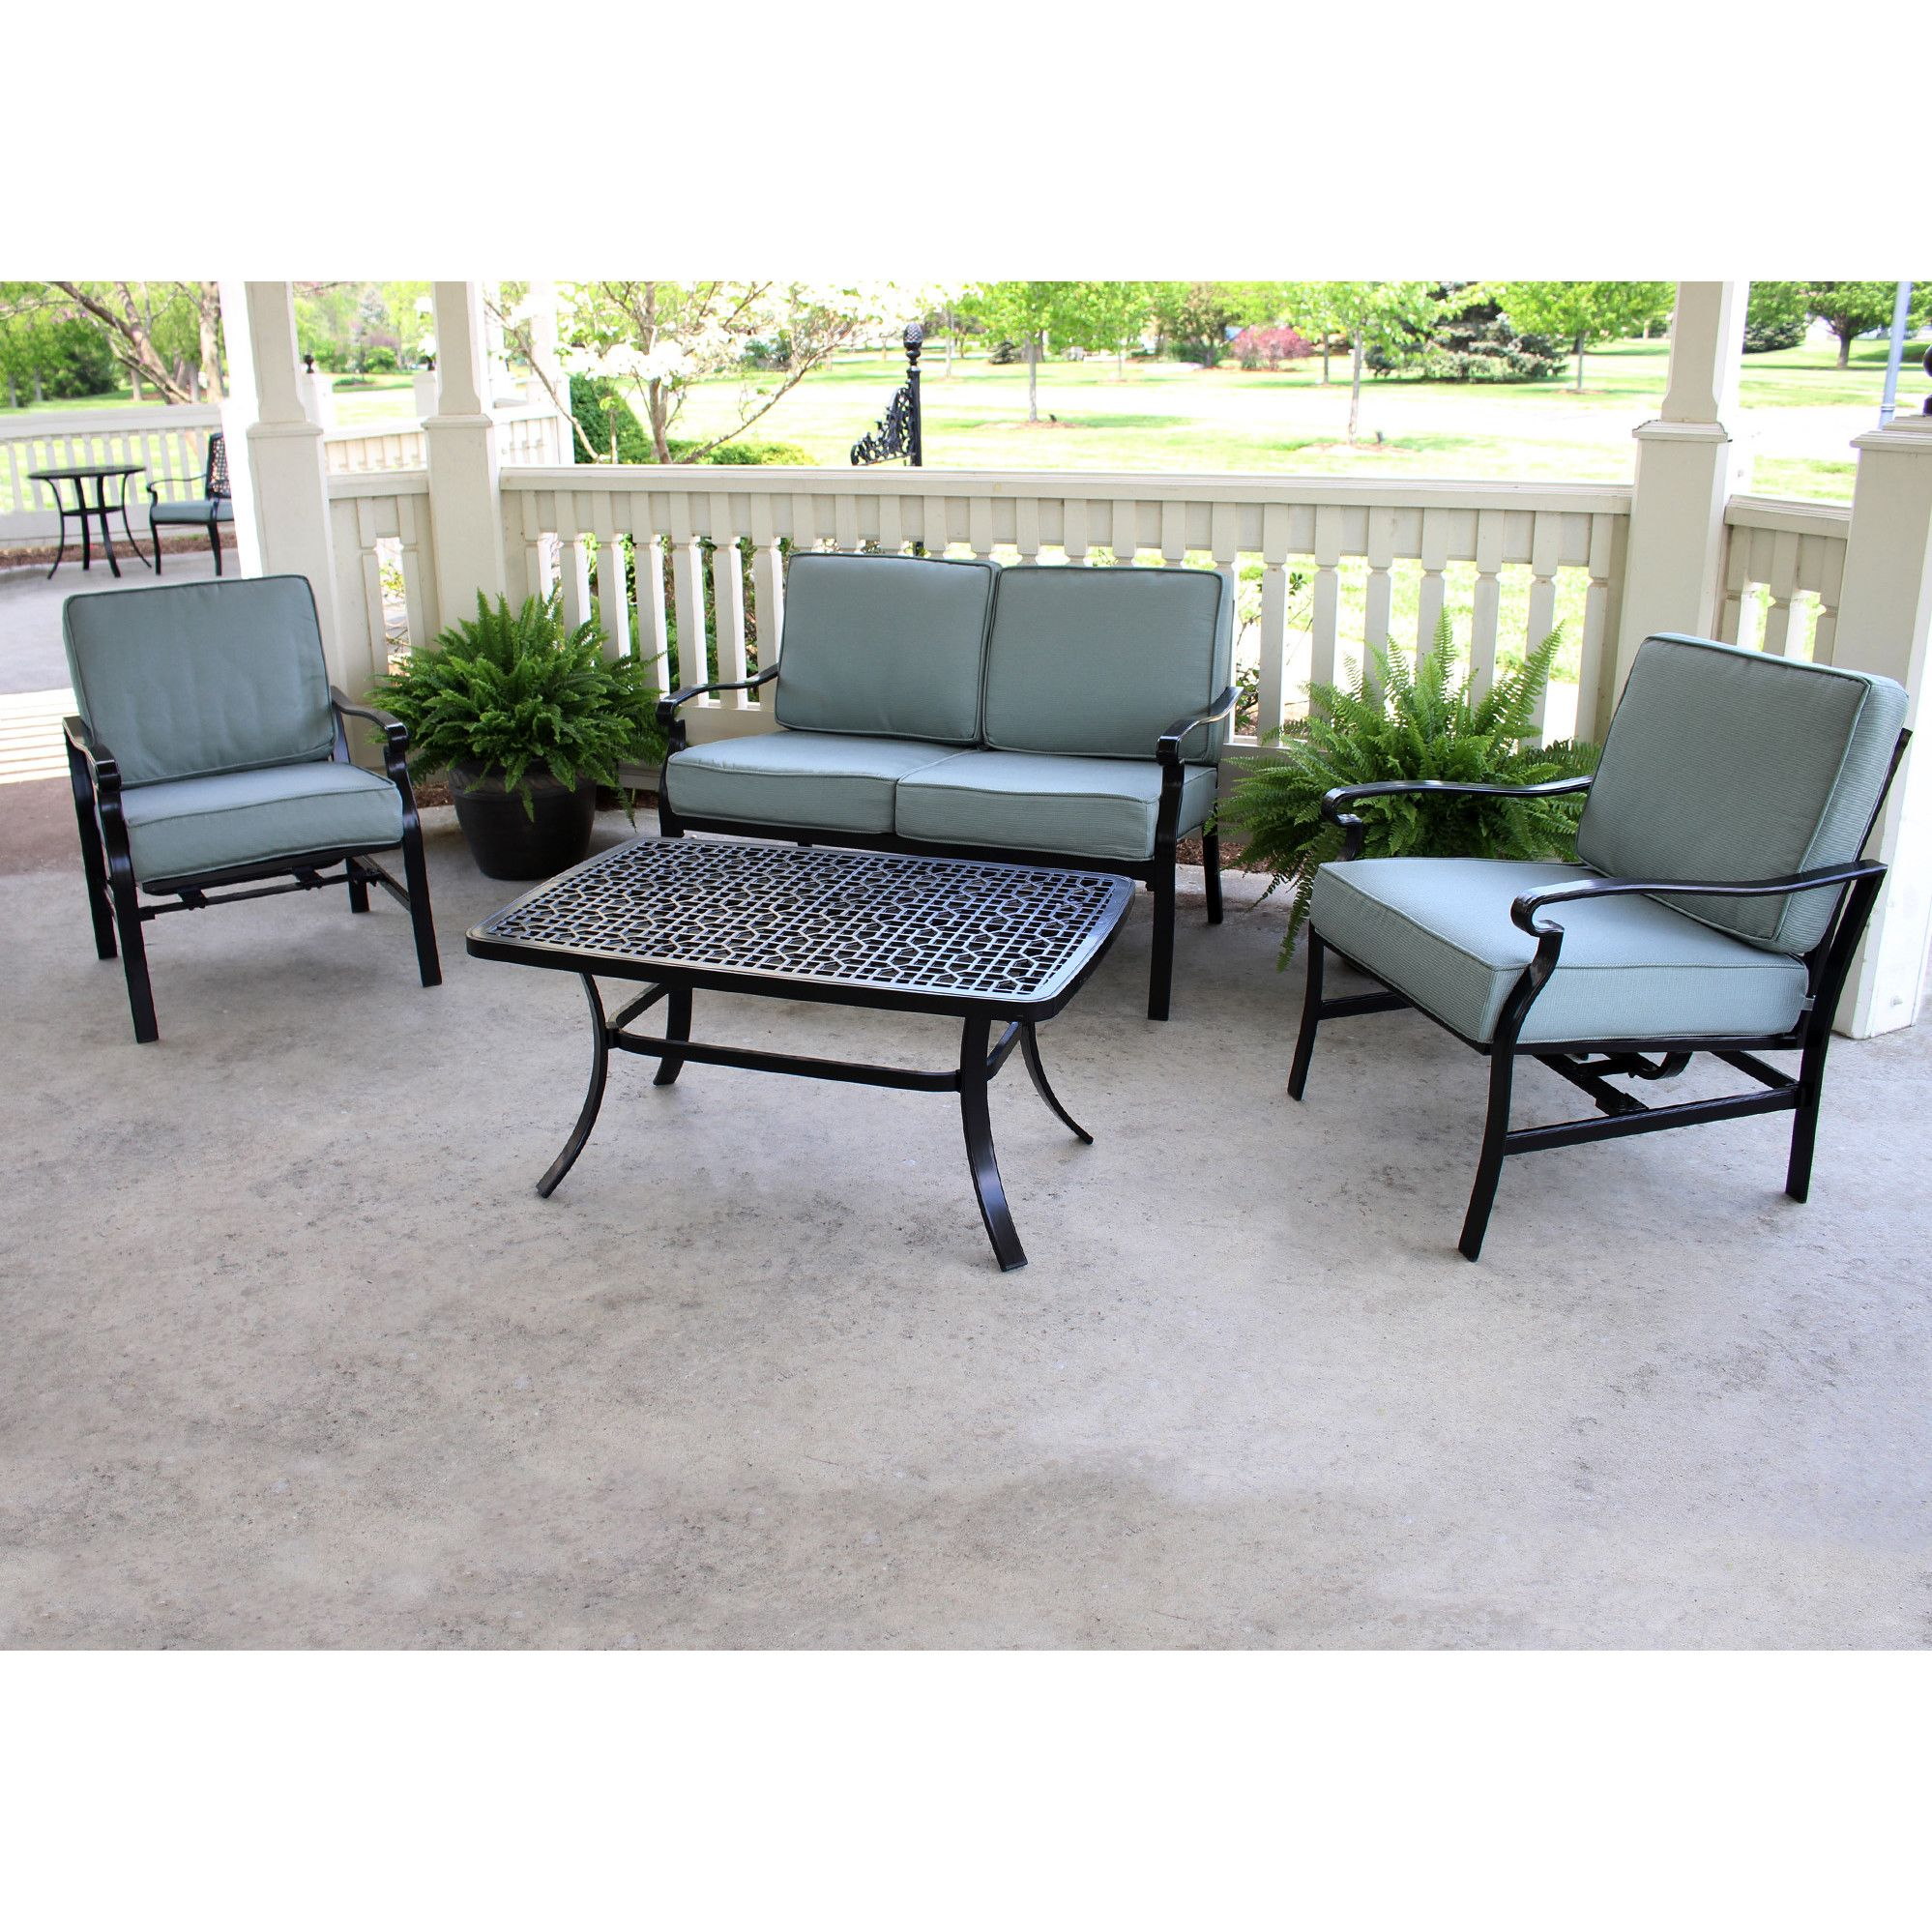 Best Apollo Providence 4 Piece Deep Seating Group With Cushion 400 x 300